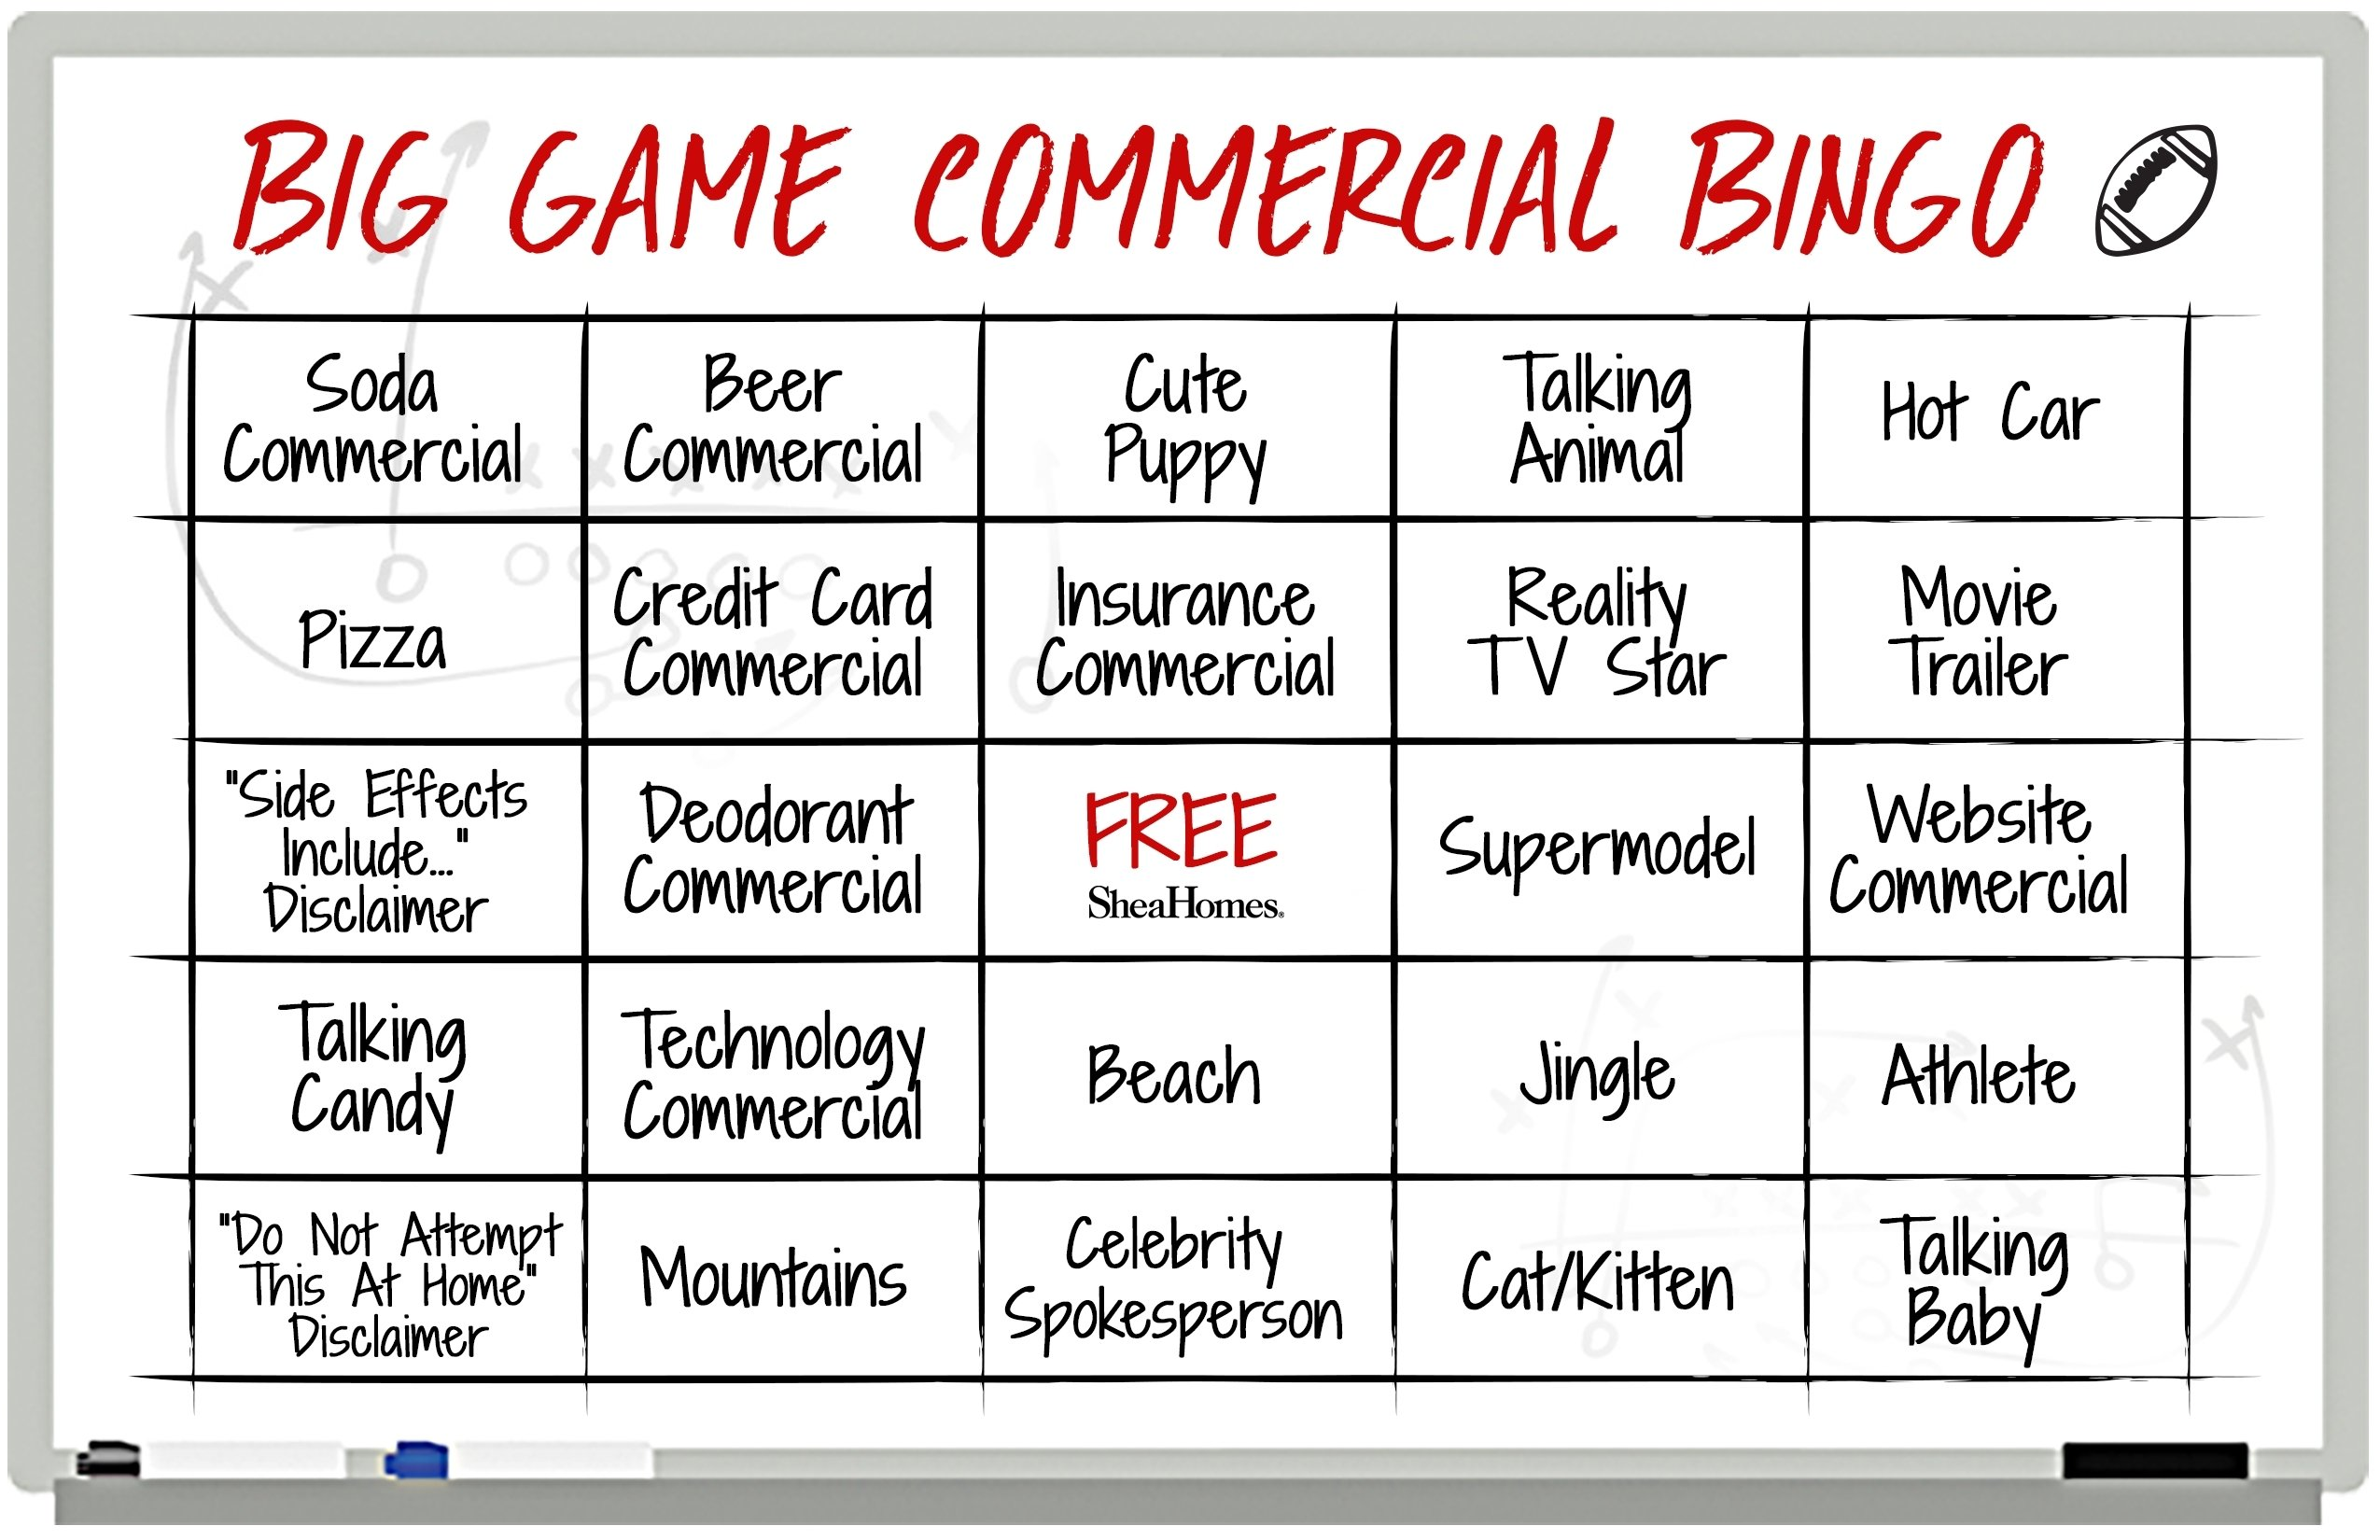 10 Amazing Super Bowl Party Game Ideas